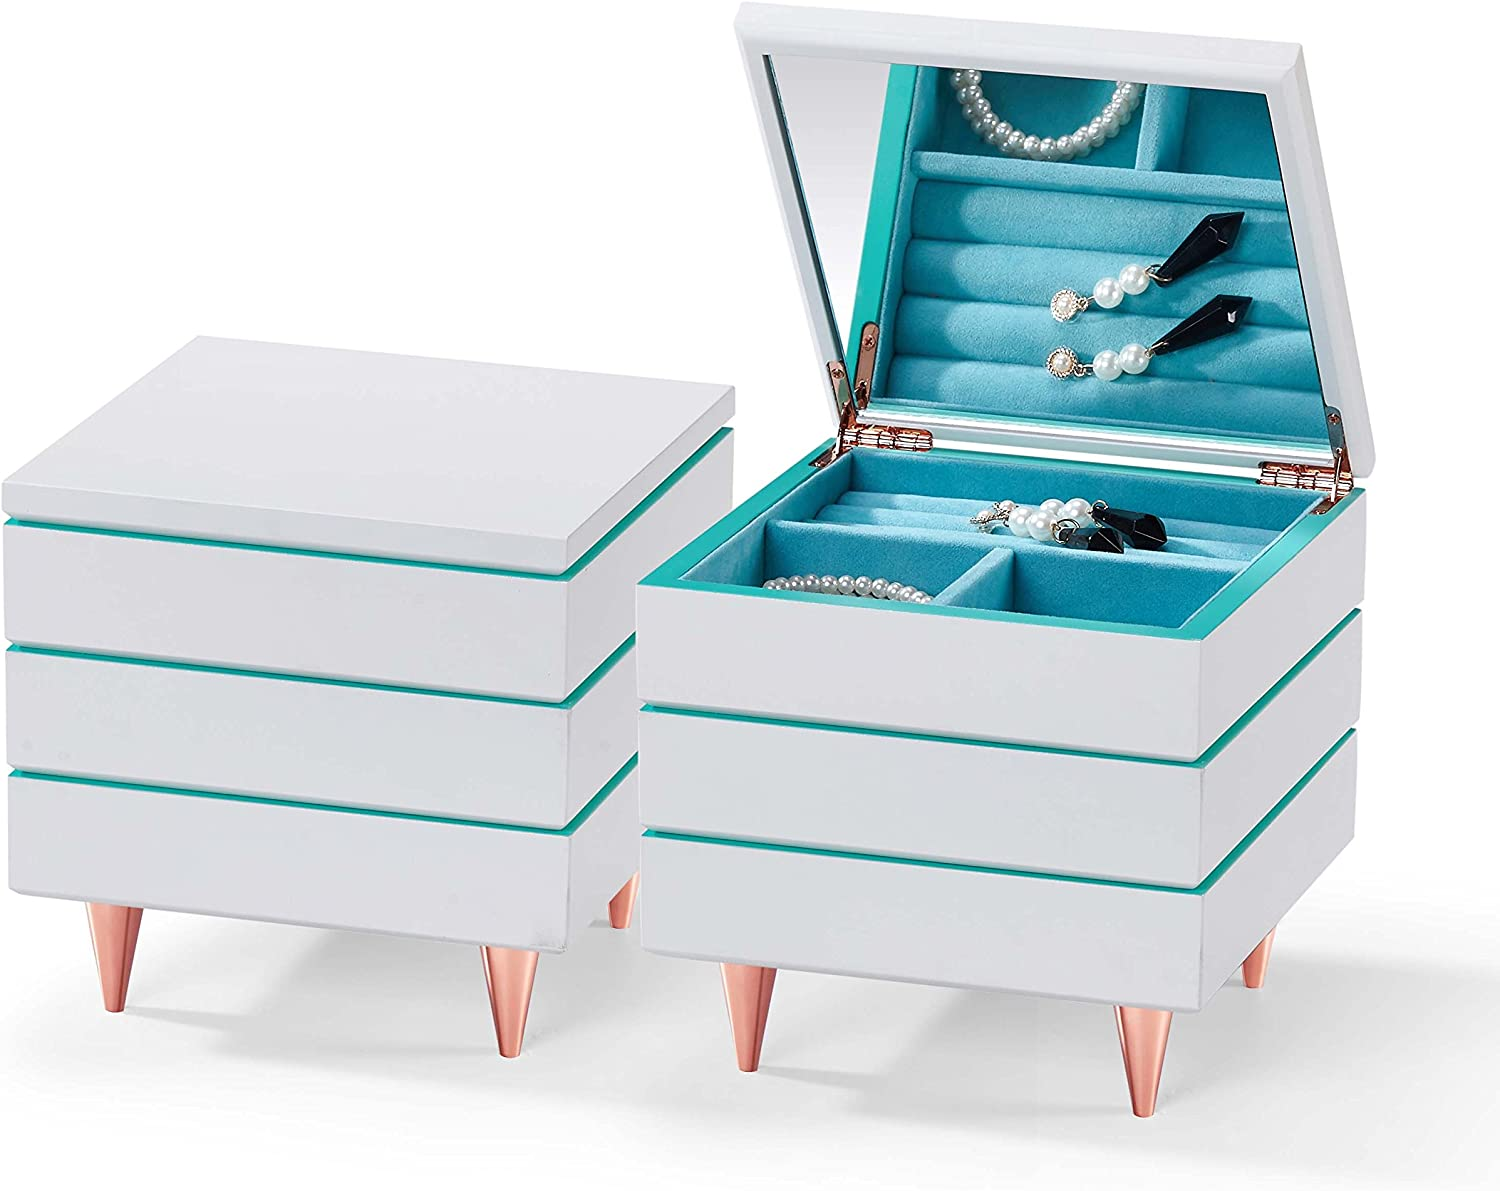 Small Great Gift for Valentines Day 3 Layers Mothers Day and Birthday Modern Style Stackable Wooden Jewelry Box